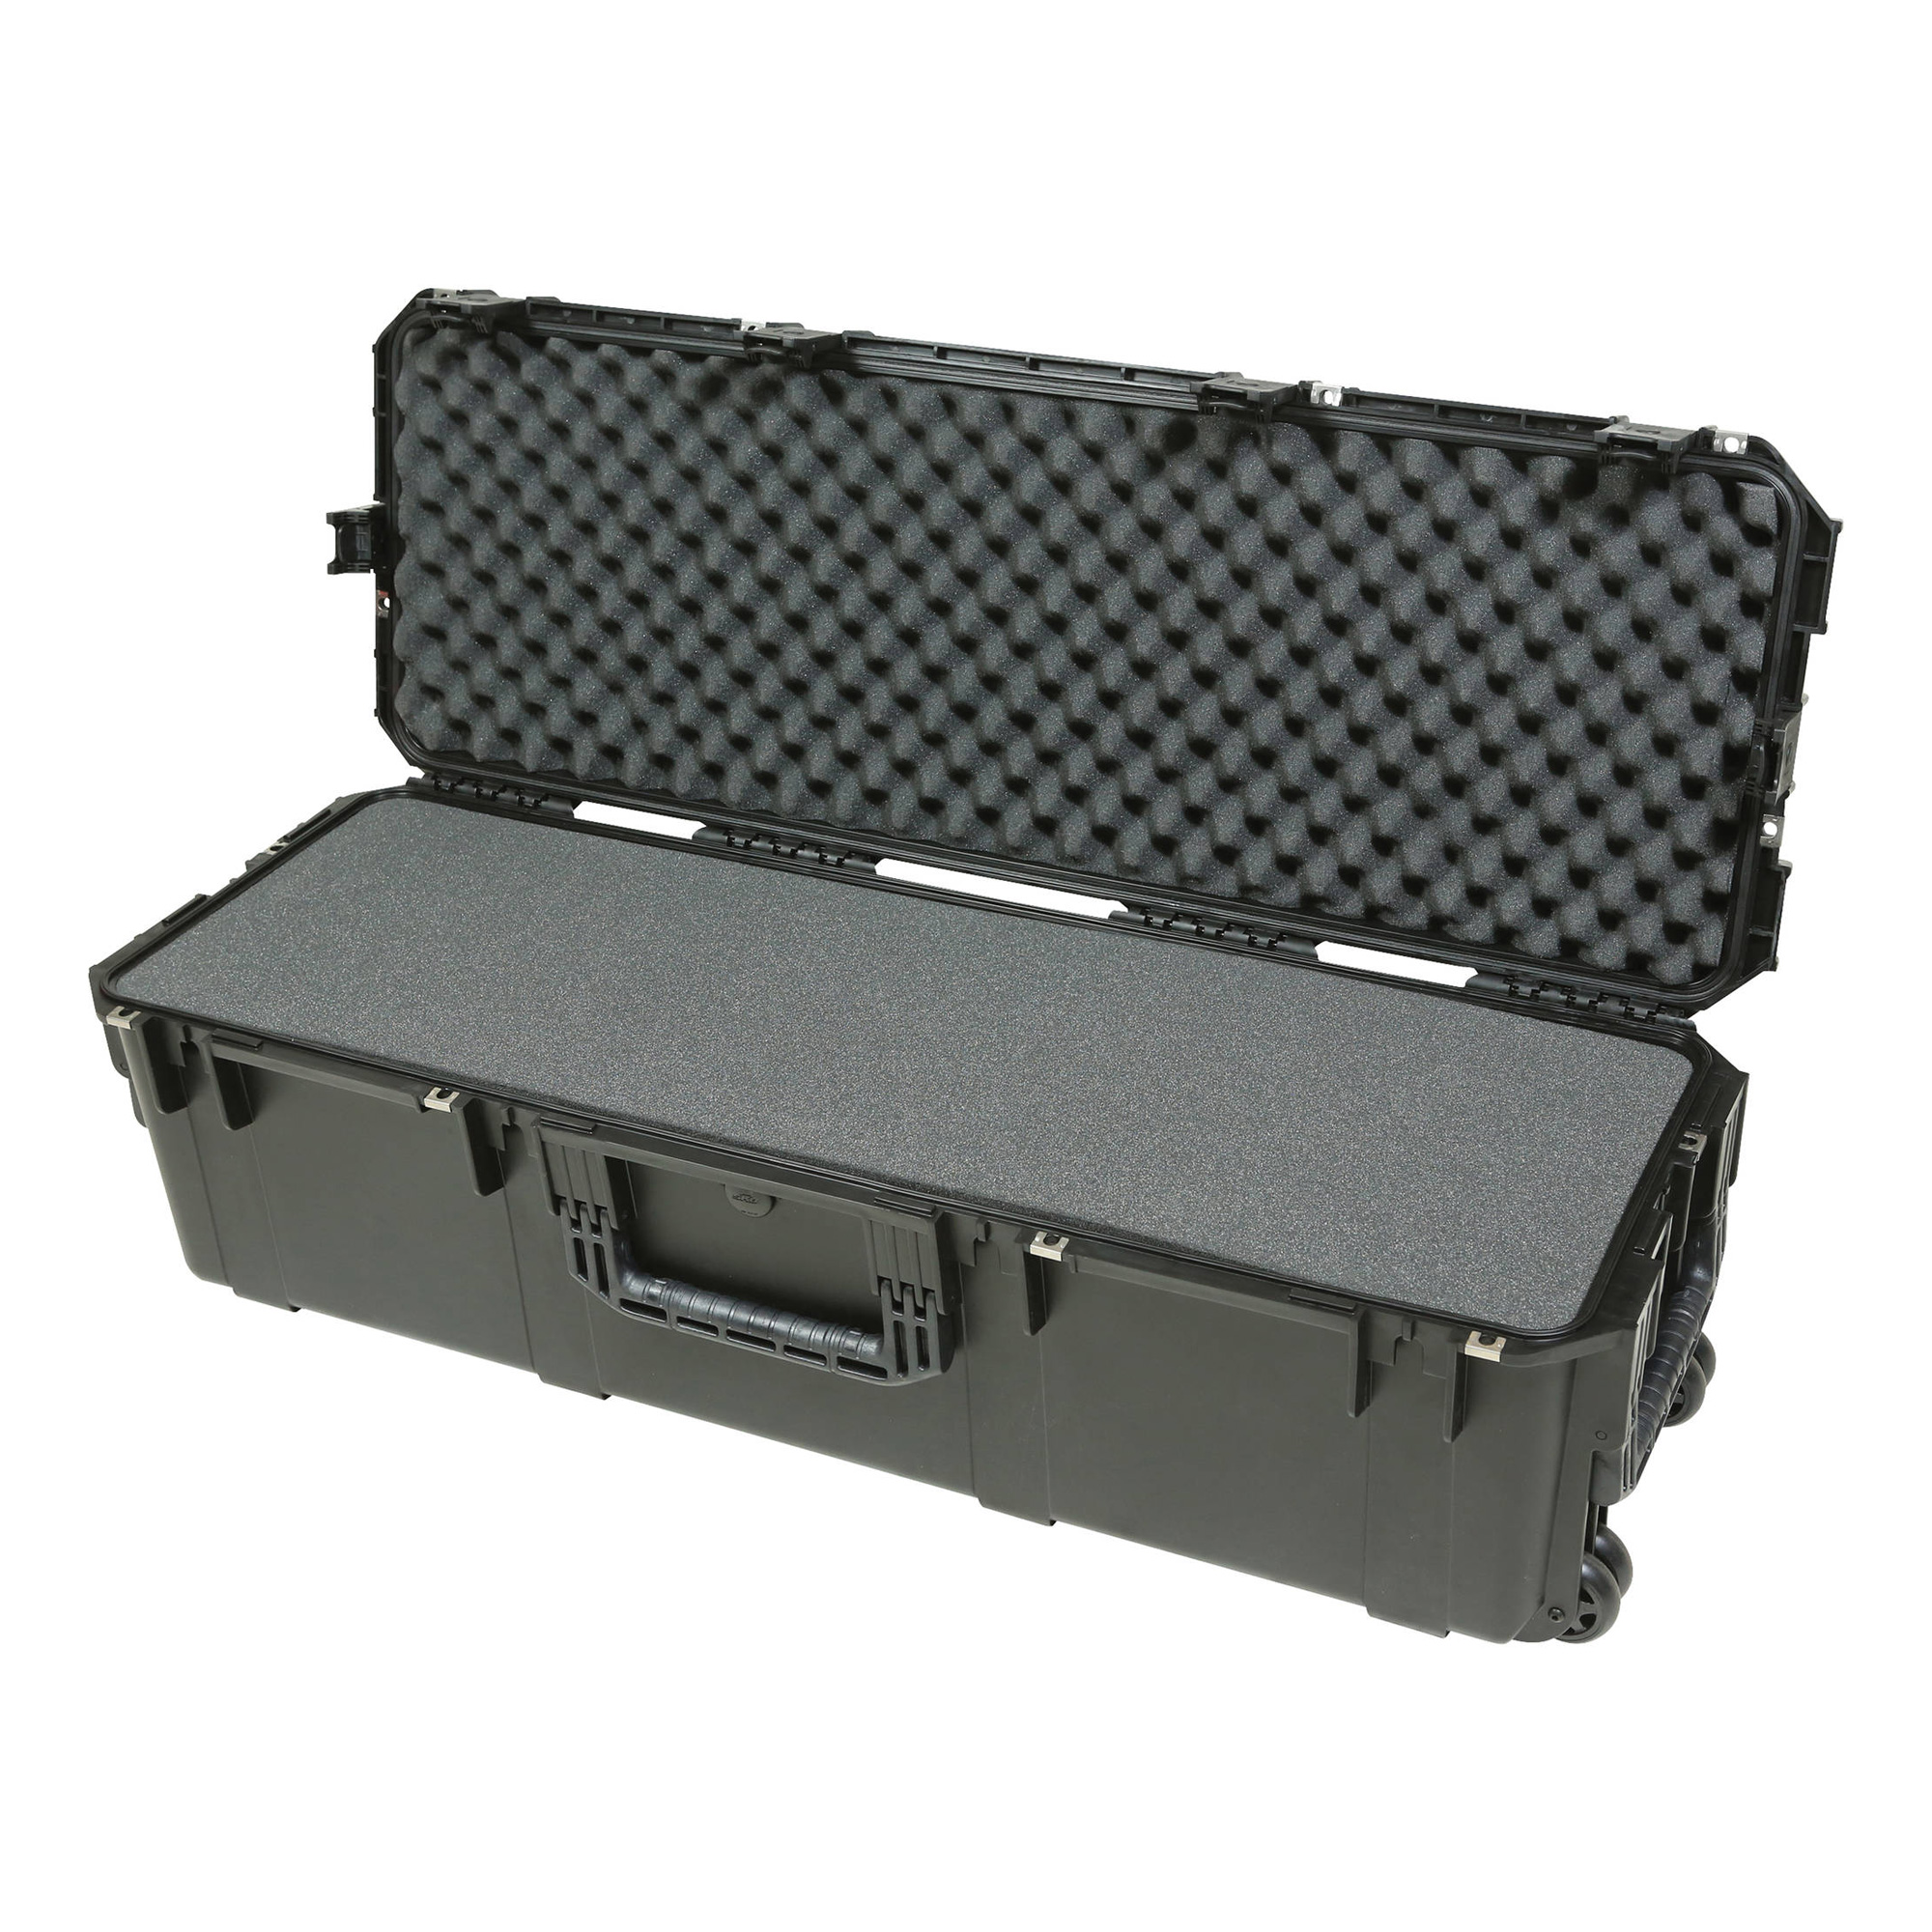 Injection Molded Waterproof Case with Wheels and Layered Foam